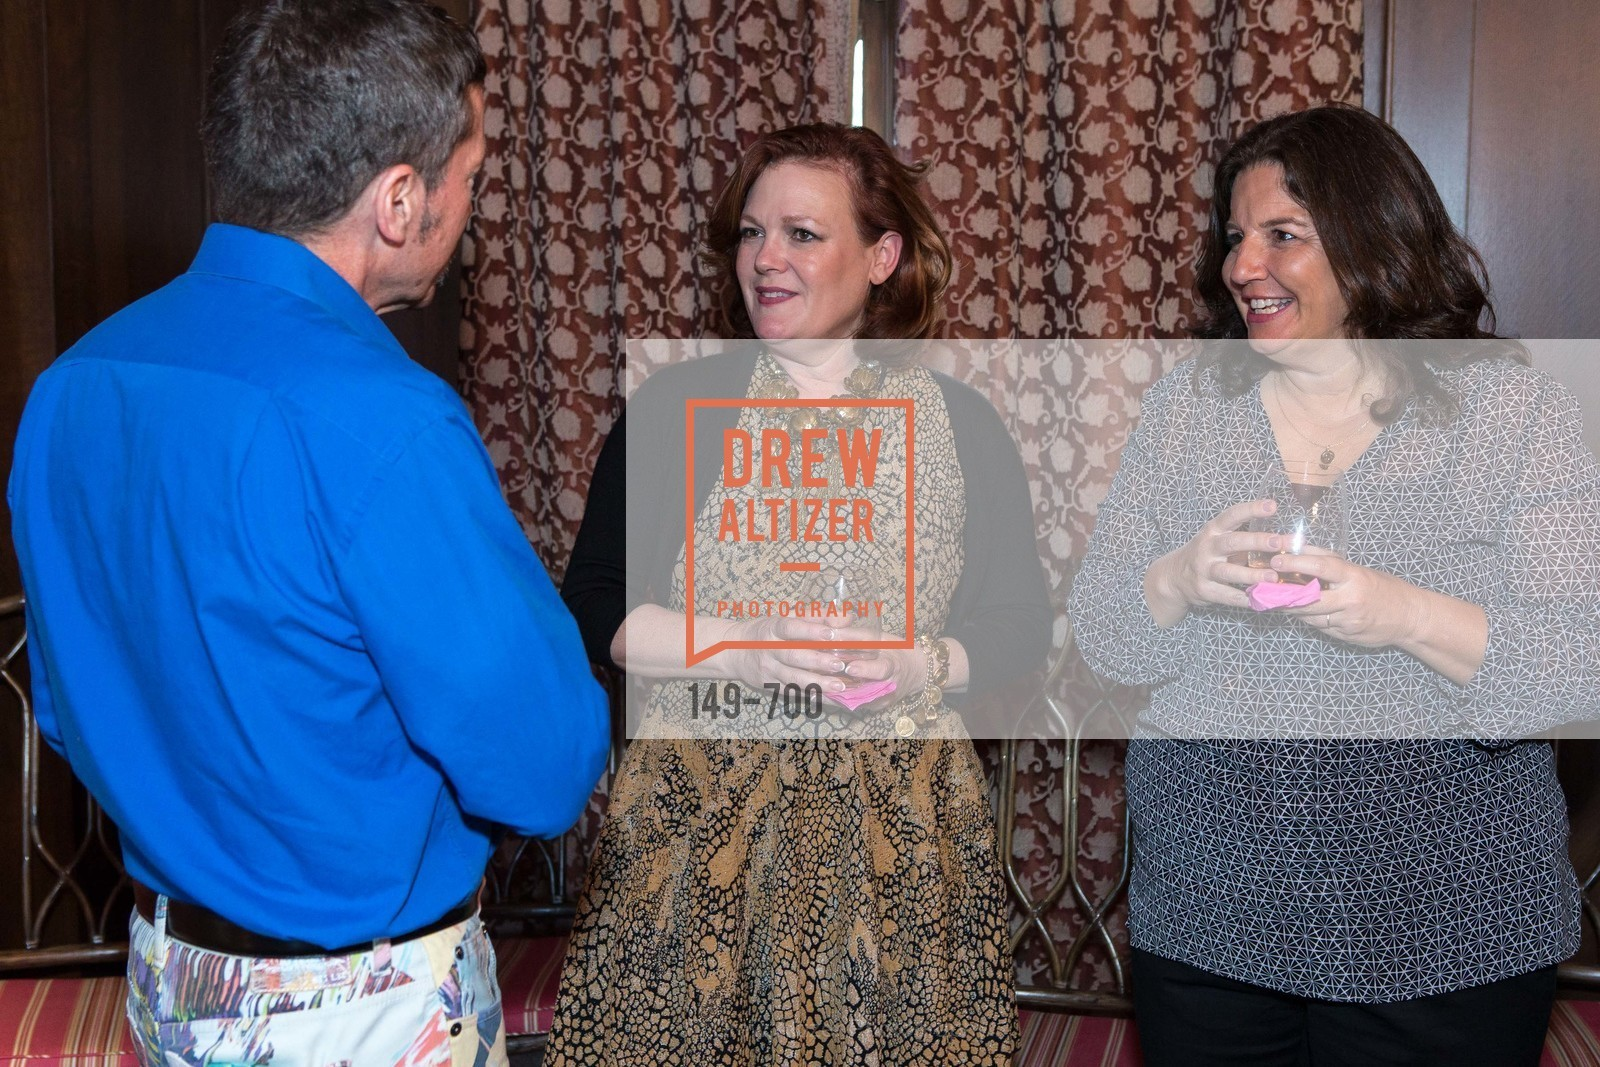 Jennifer Raiser, Bridget Stangland, SUKEY FORBES' Book Signing, US, May 7th, 2015,Drew Altizer, Drew Altizer Photography, full-service agency, private events, San Francisco photographer, photographer california